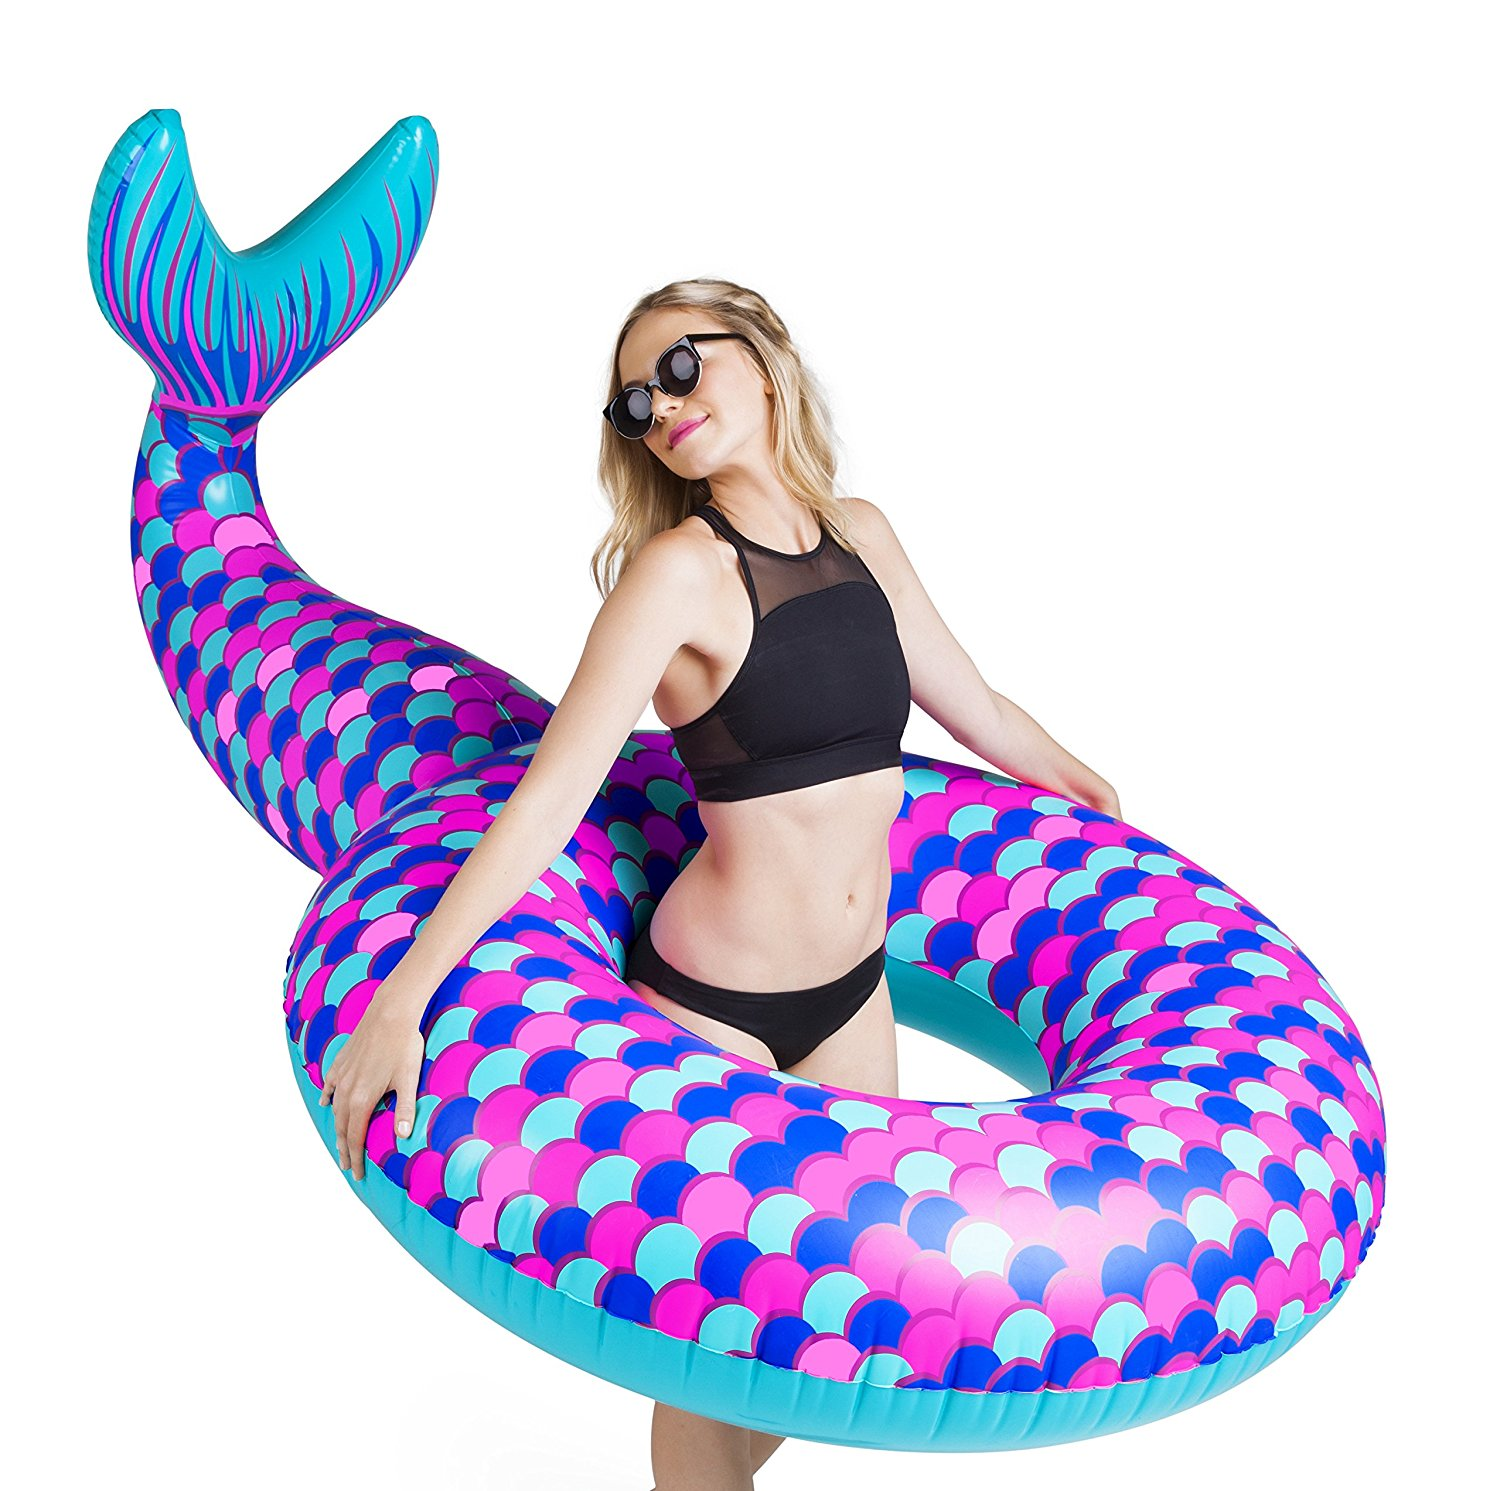 Mermaid Tail Float - The Best Pool Floats for summer 2017